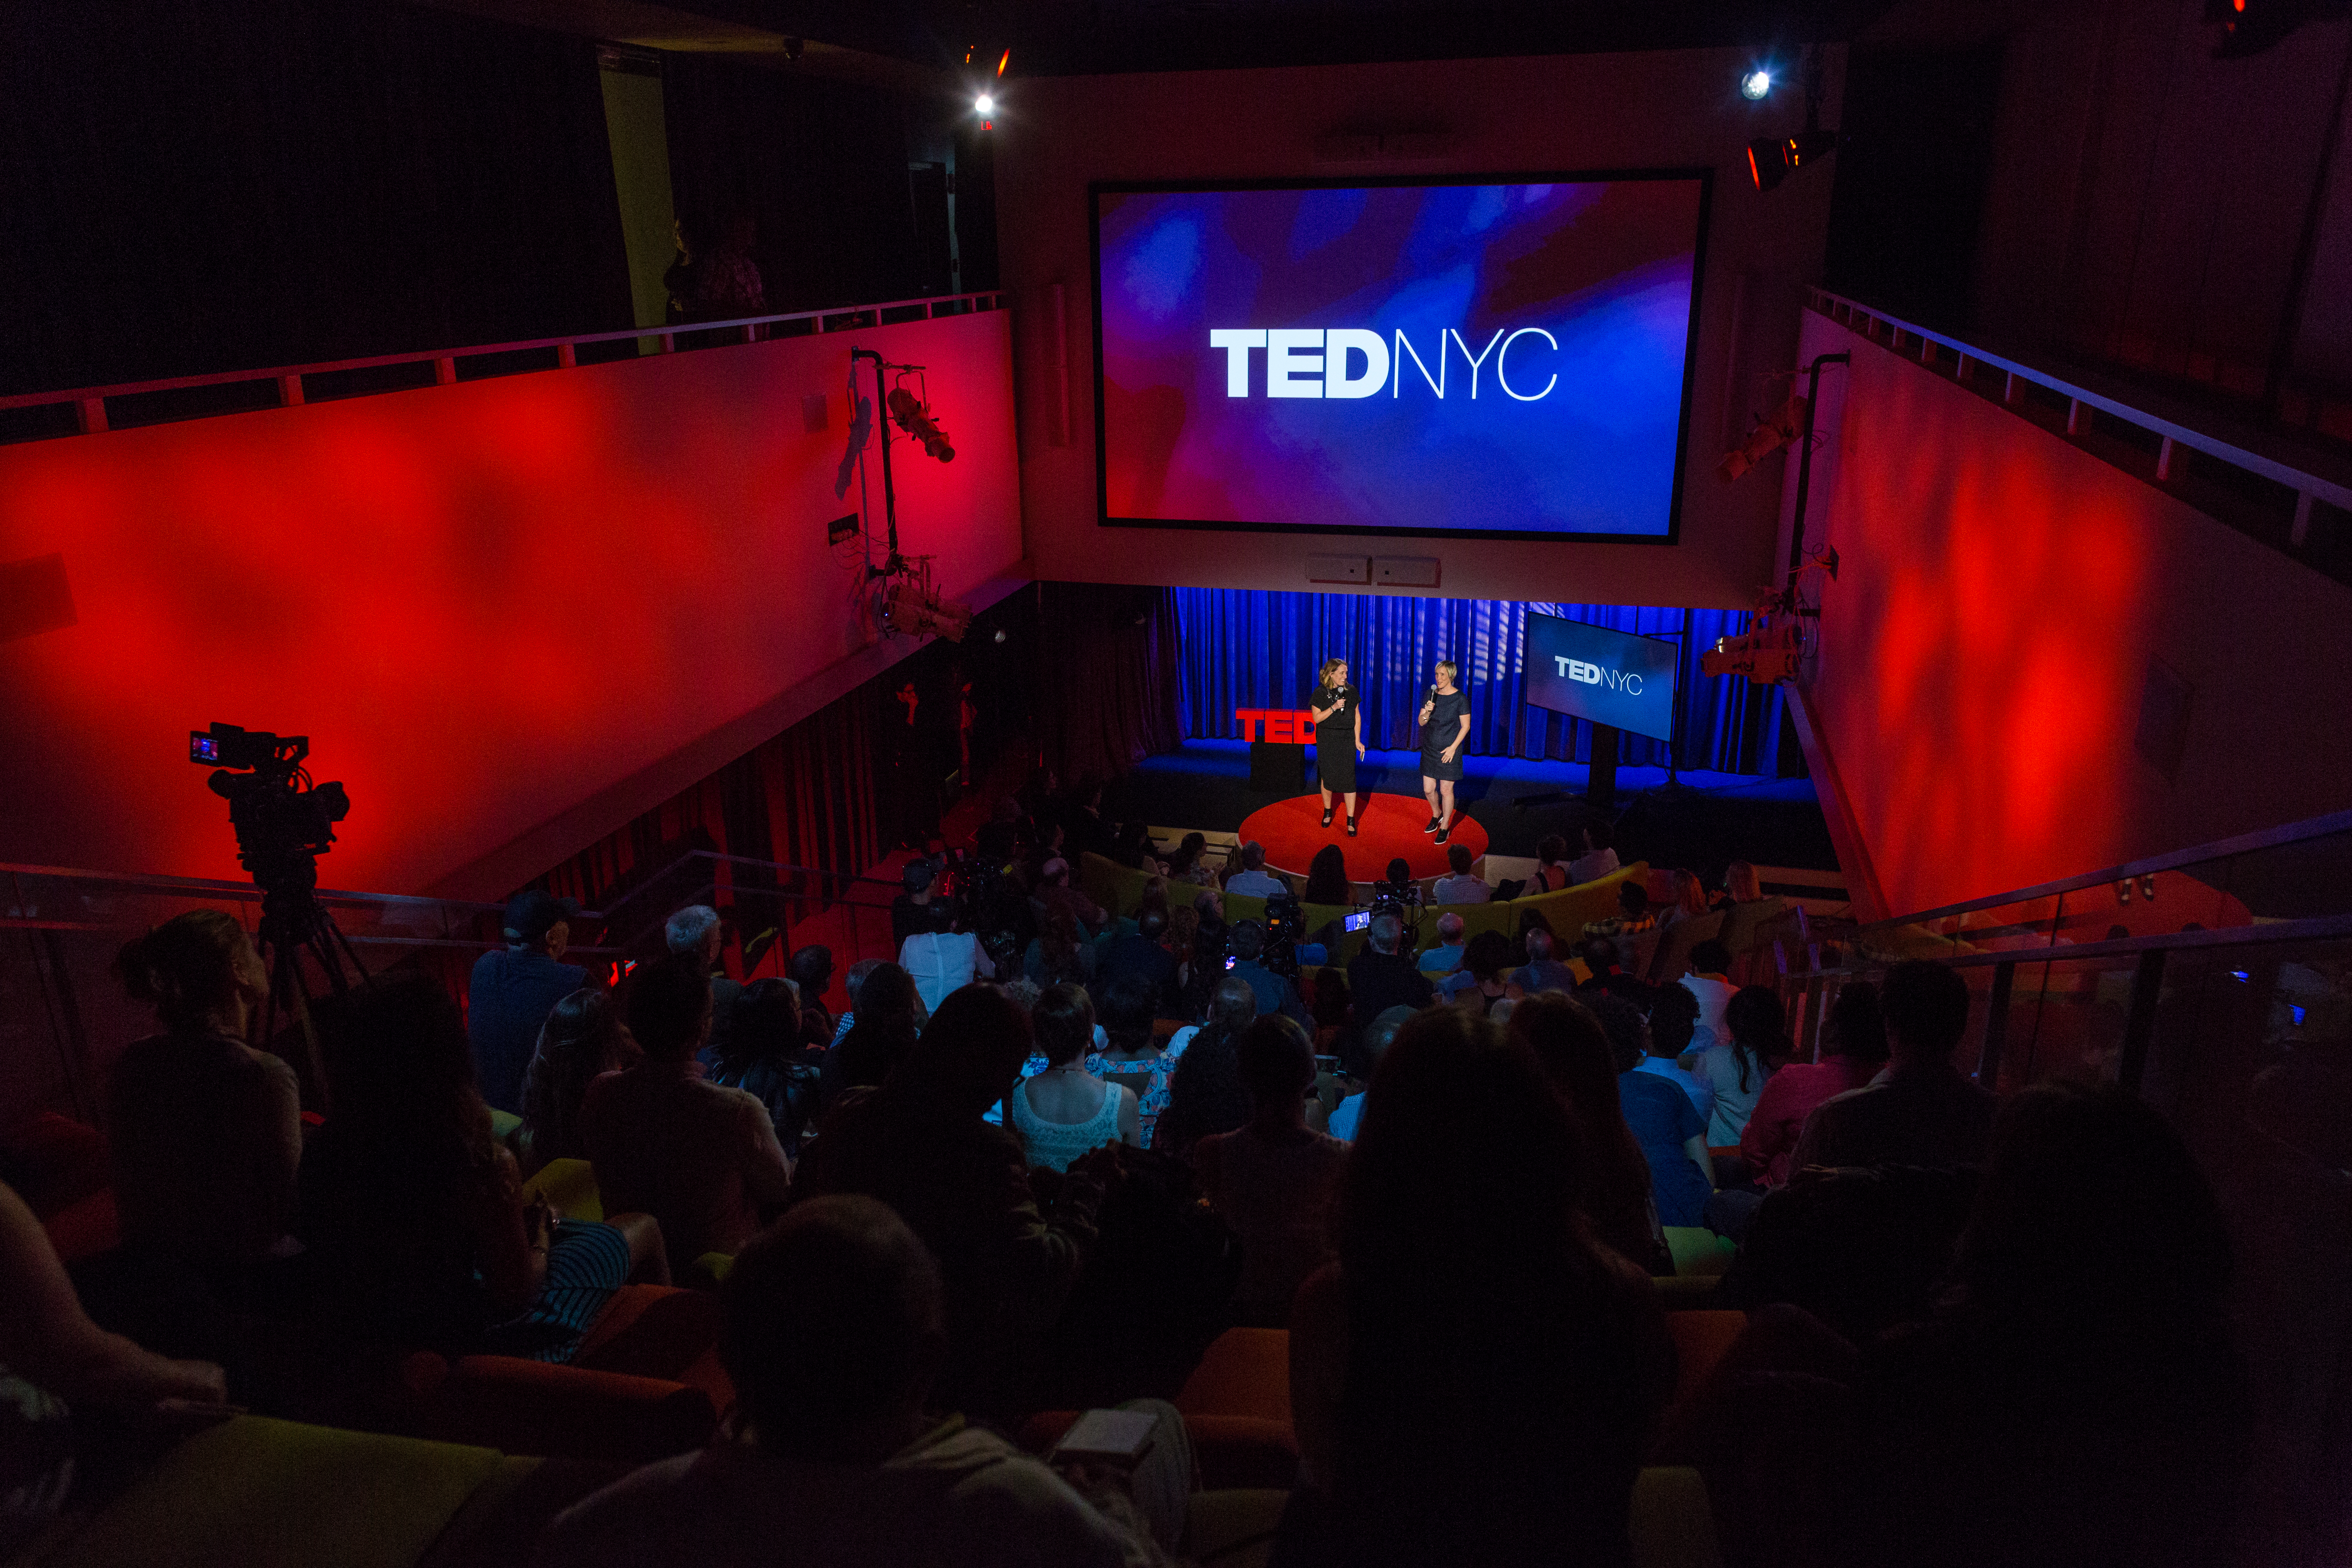 (L-R) Hosts Kelly Stoetzel and Helen Walters speak onstage at TEDNYC - The Election Edition, September 7, 2016, New York, NY. Photo: Ryan Lash / TED